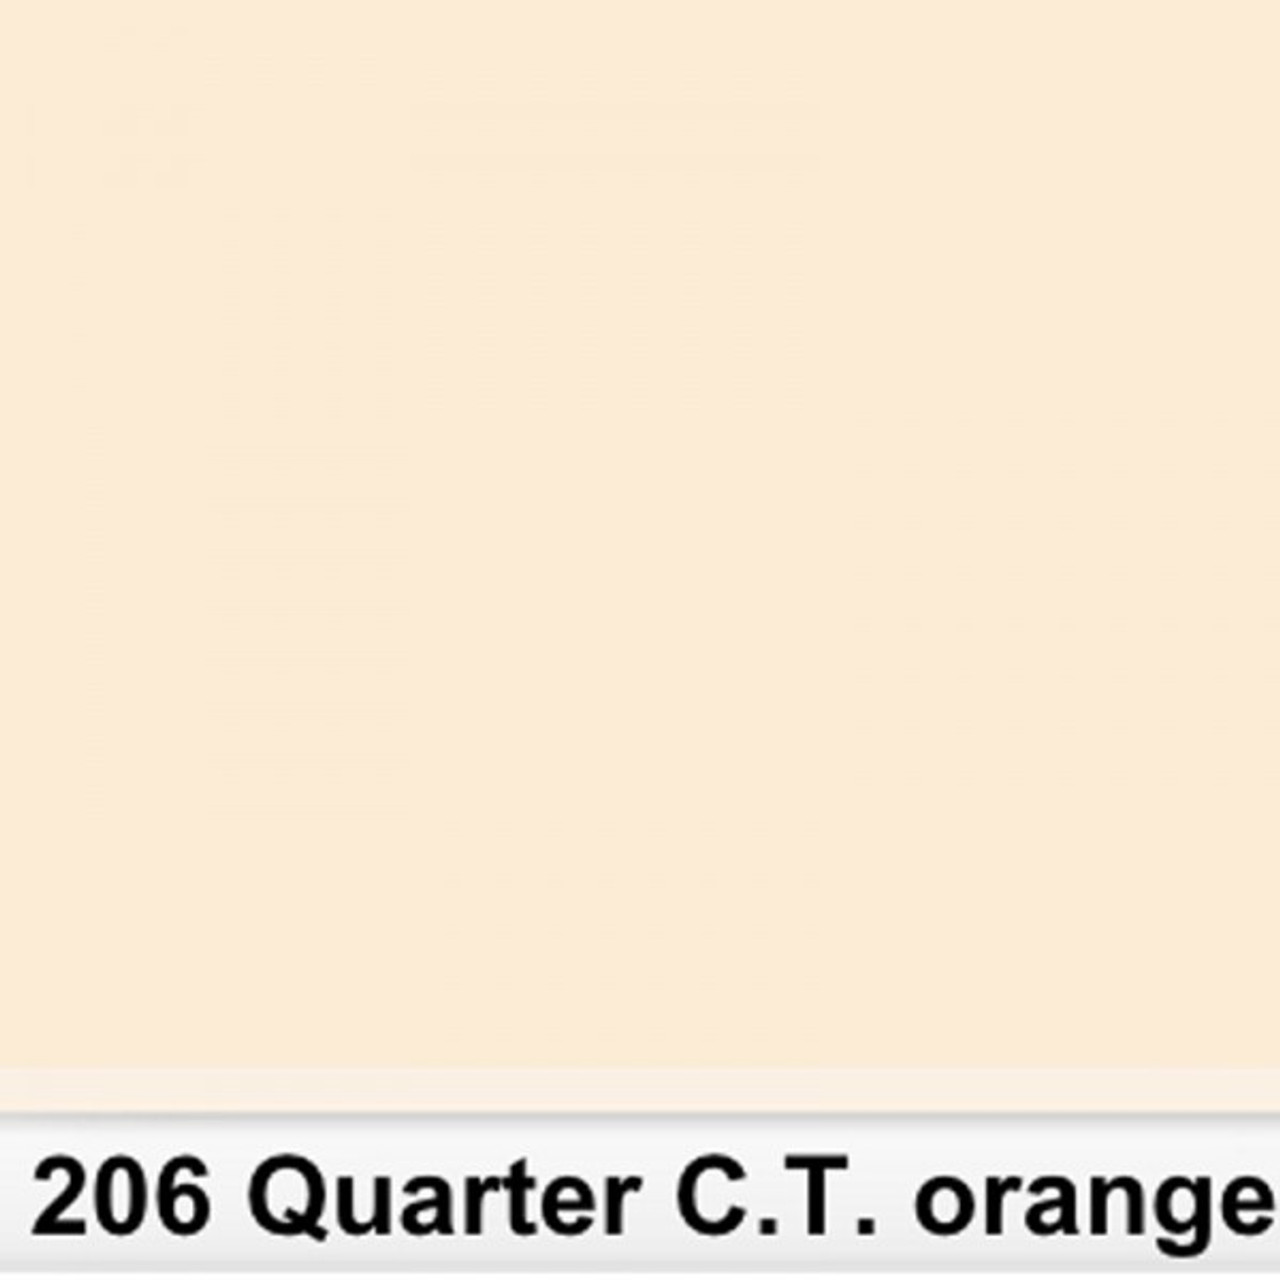 "Lee Gels Roll #206 Qtr C.T.Orange 48"" x 25'"